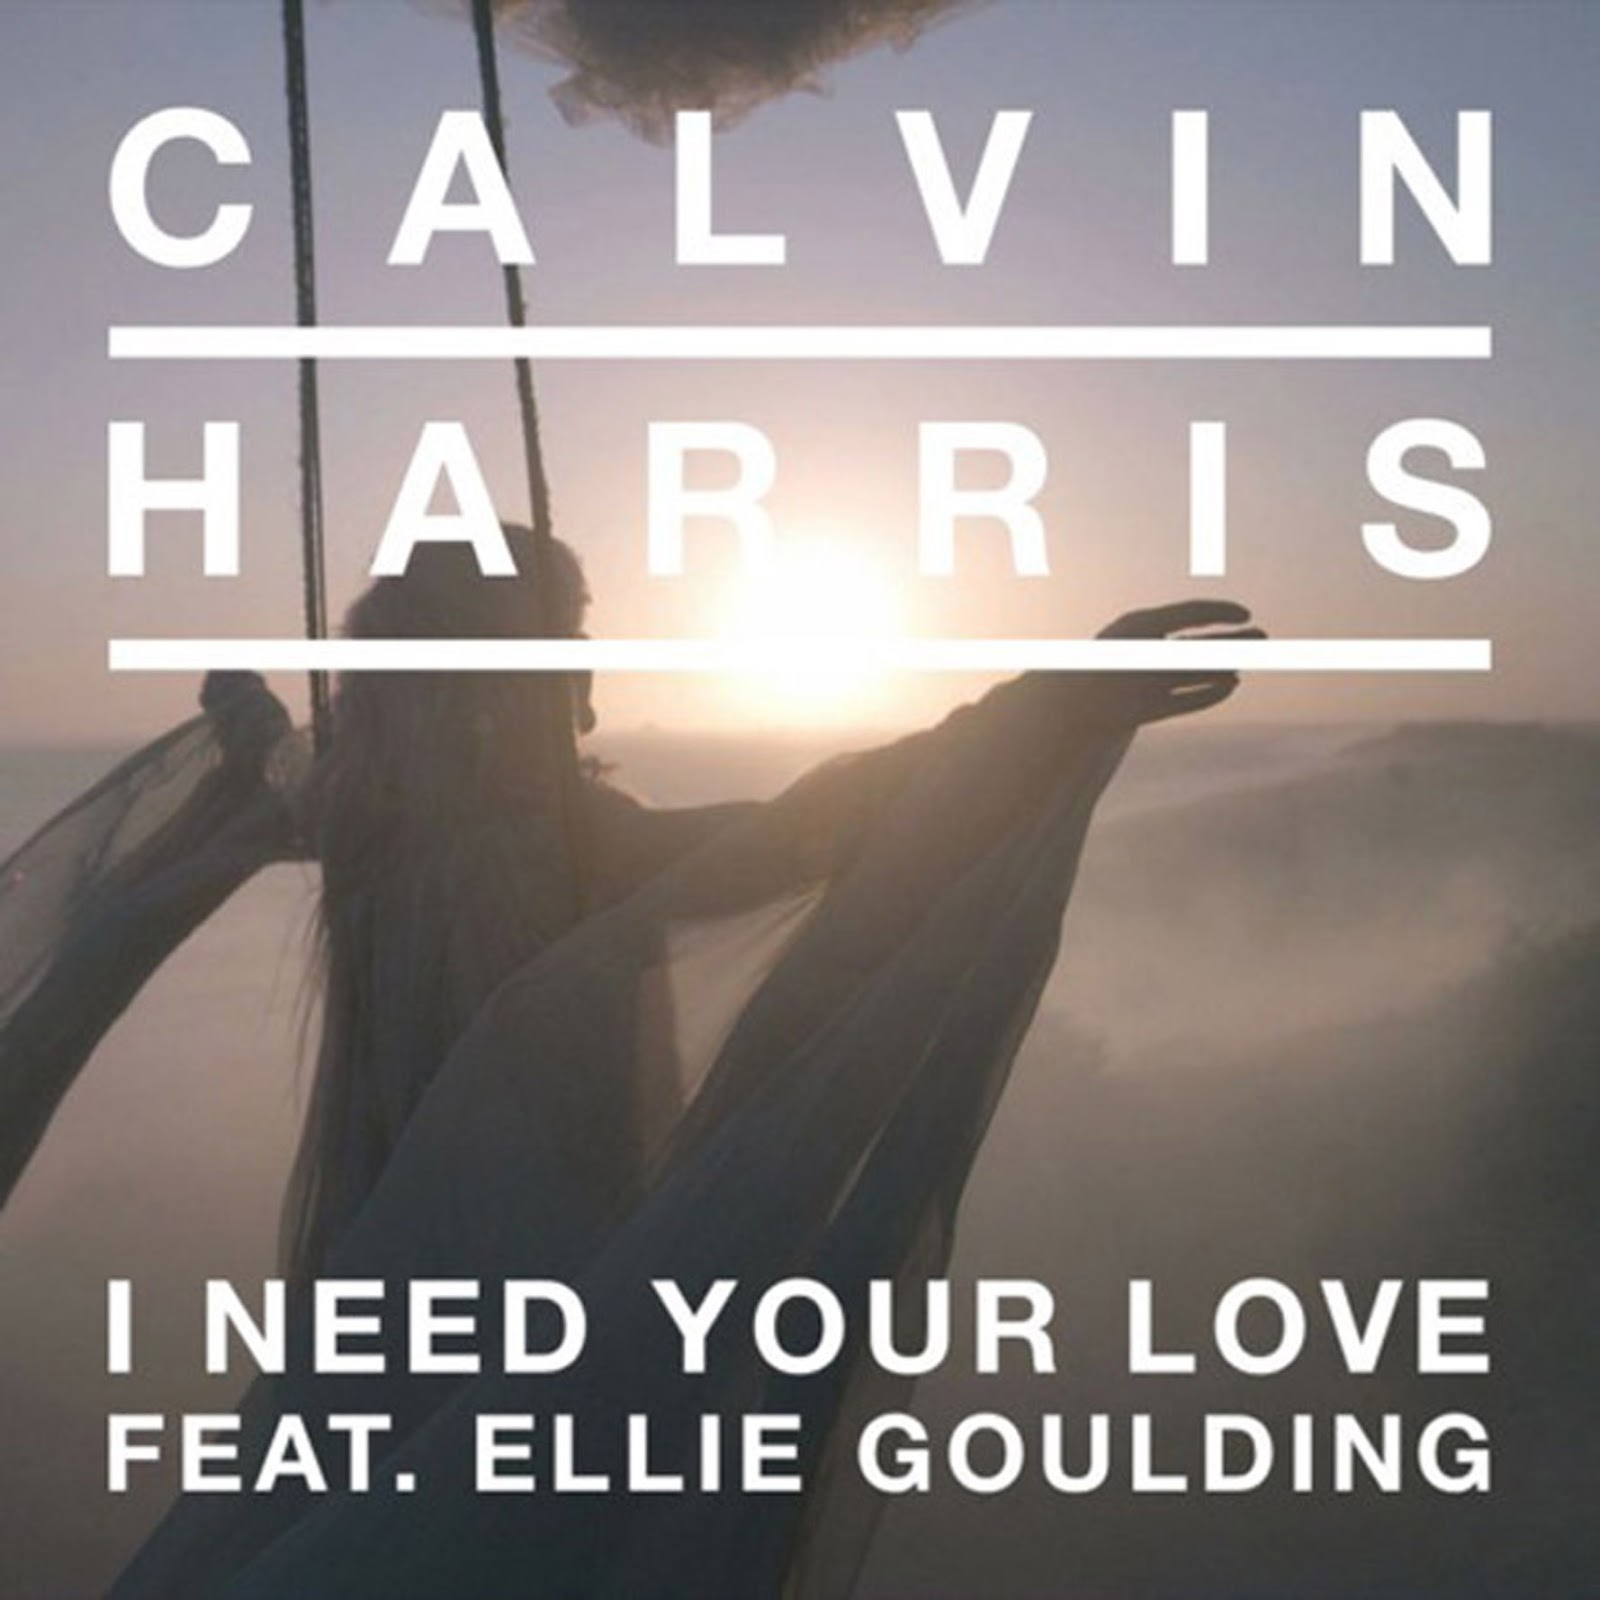 I Need Your Love Calvin Harris I Need Your Love Album Cover